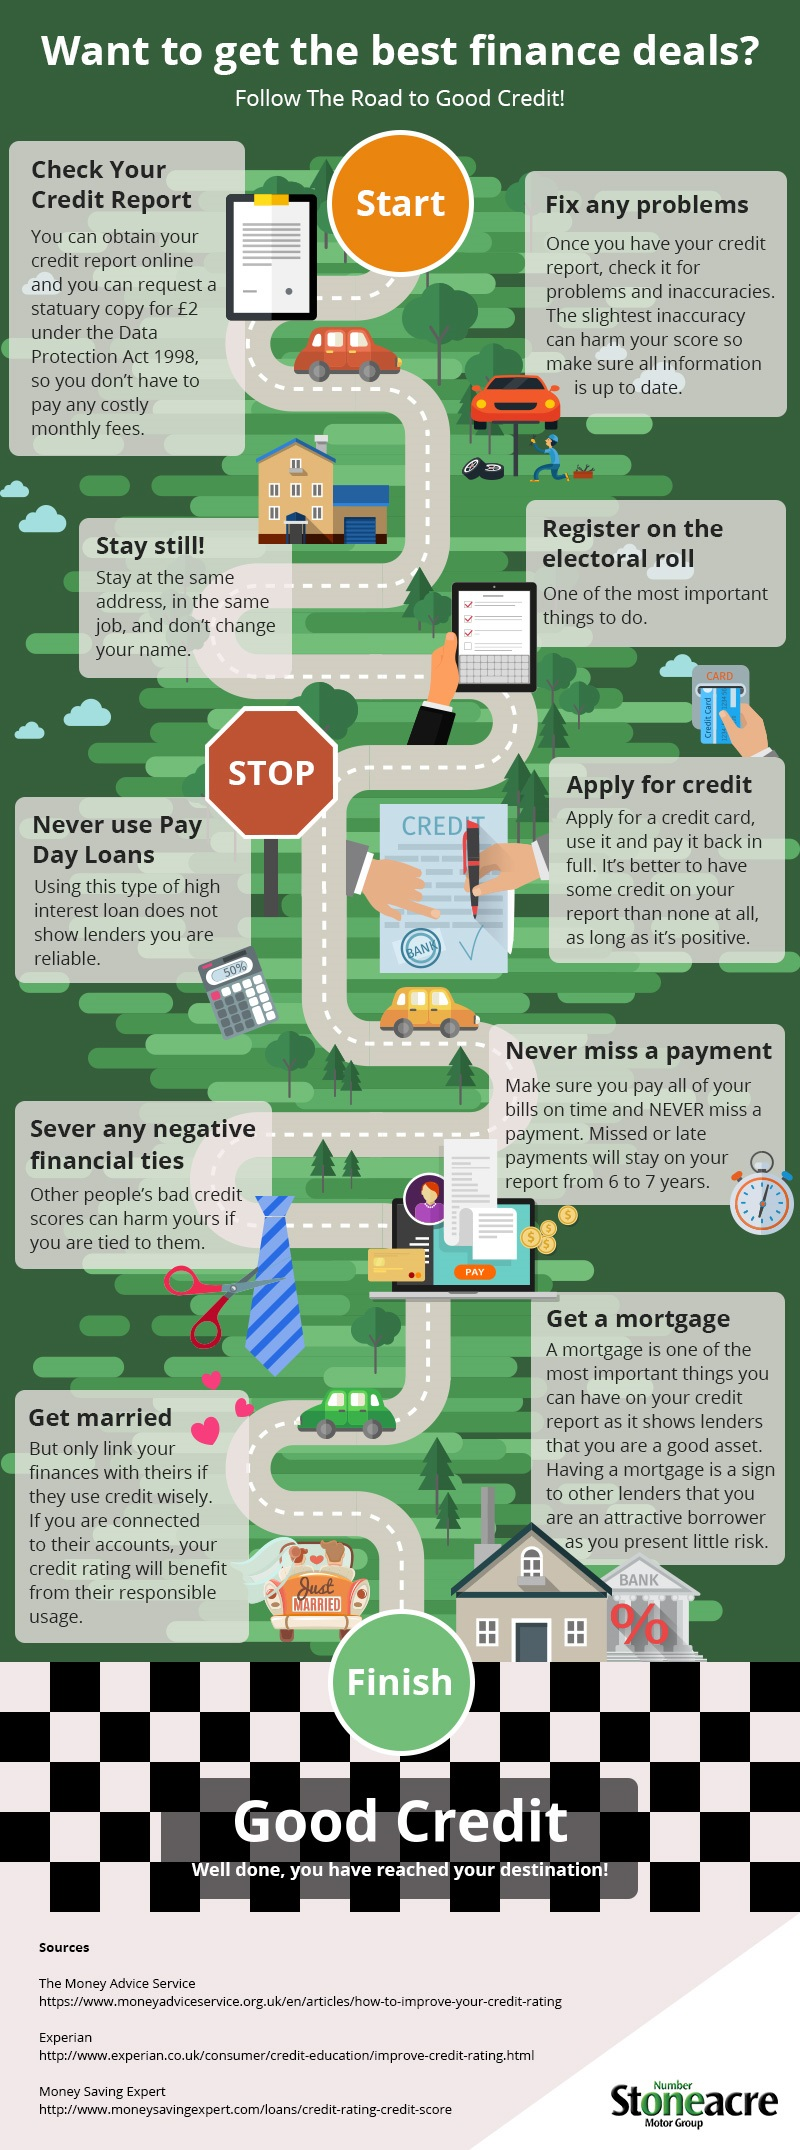 Road To Good Credit Infographic